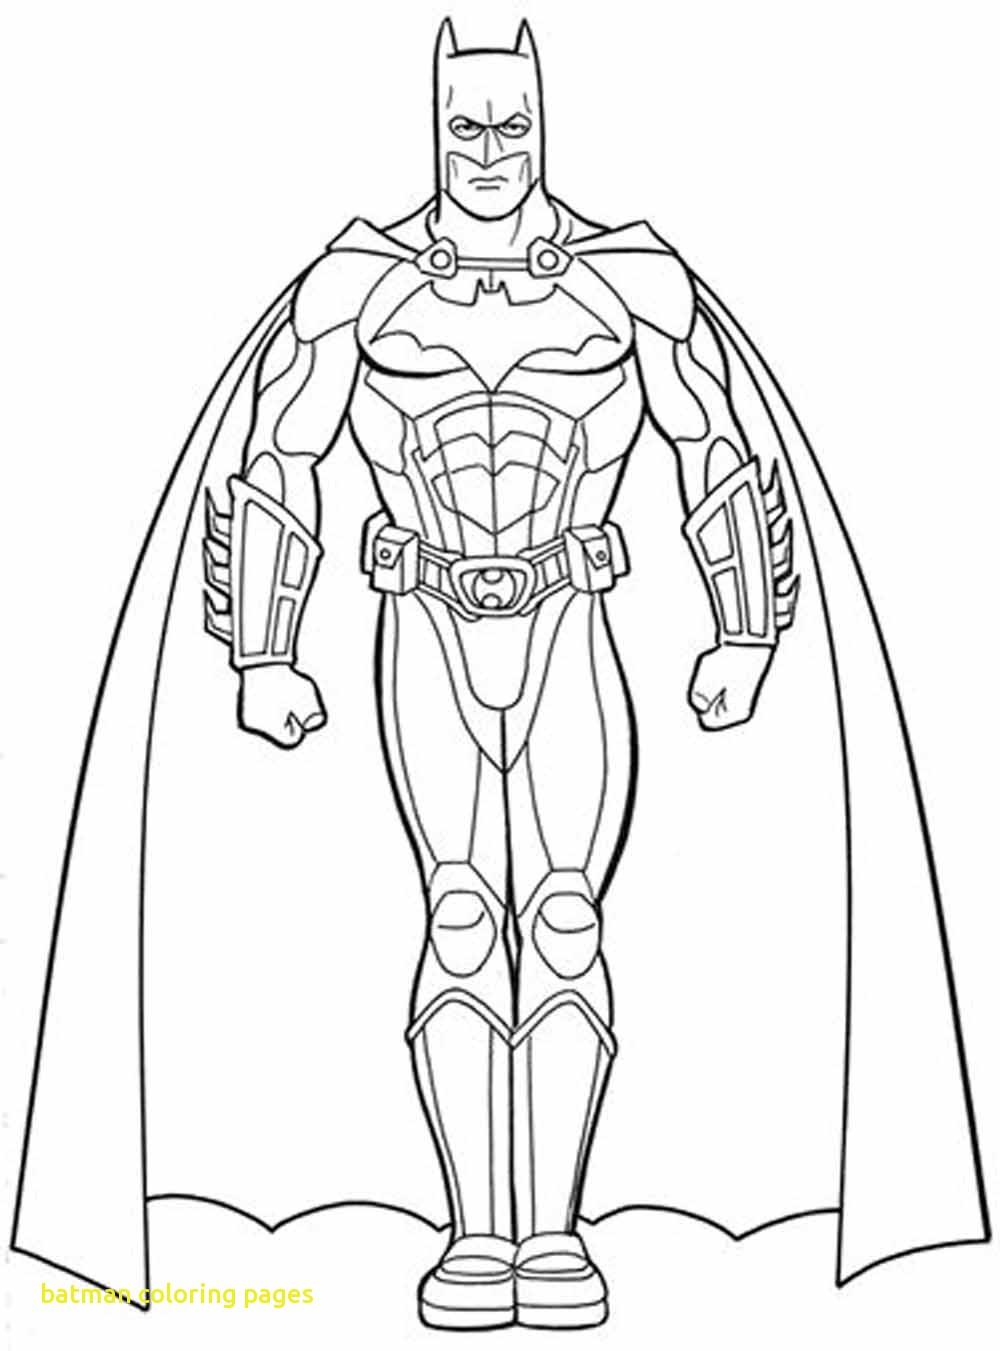 Batman Color Pages Lenito Download – Free Coloring Sheets